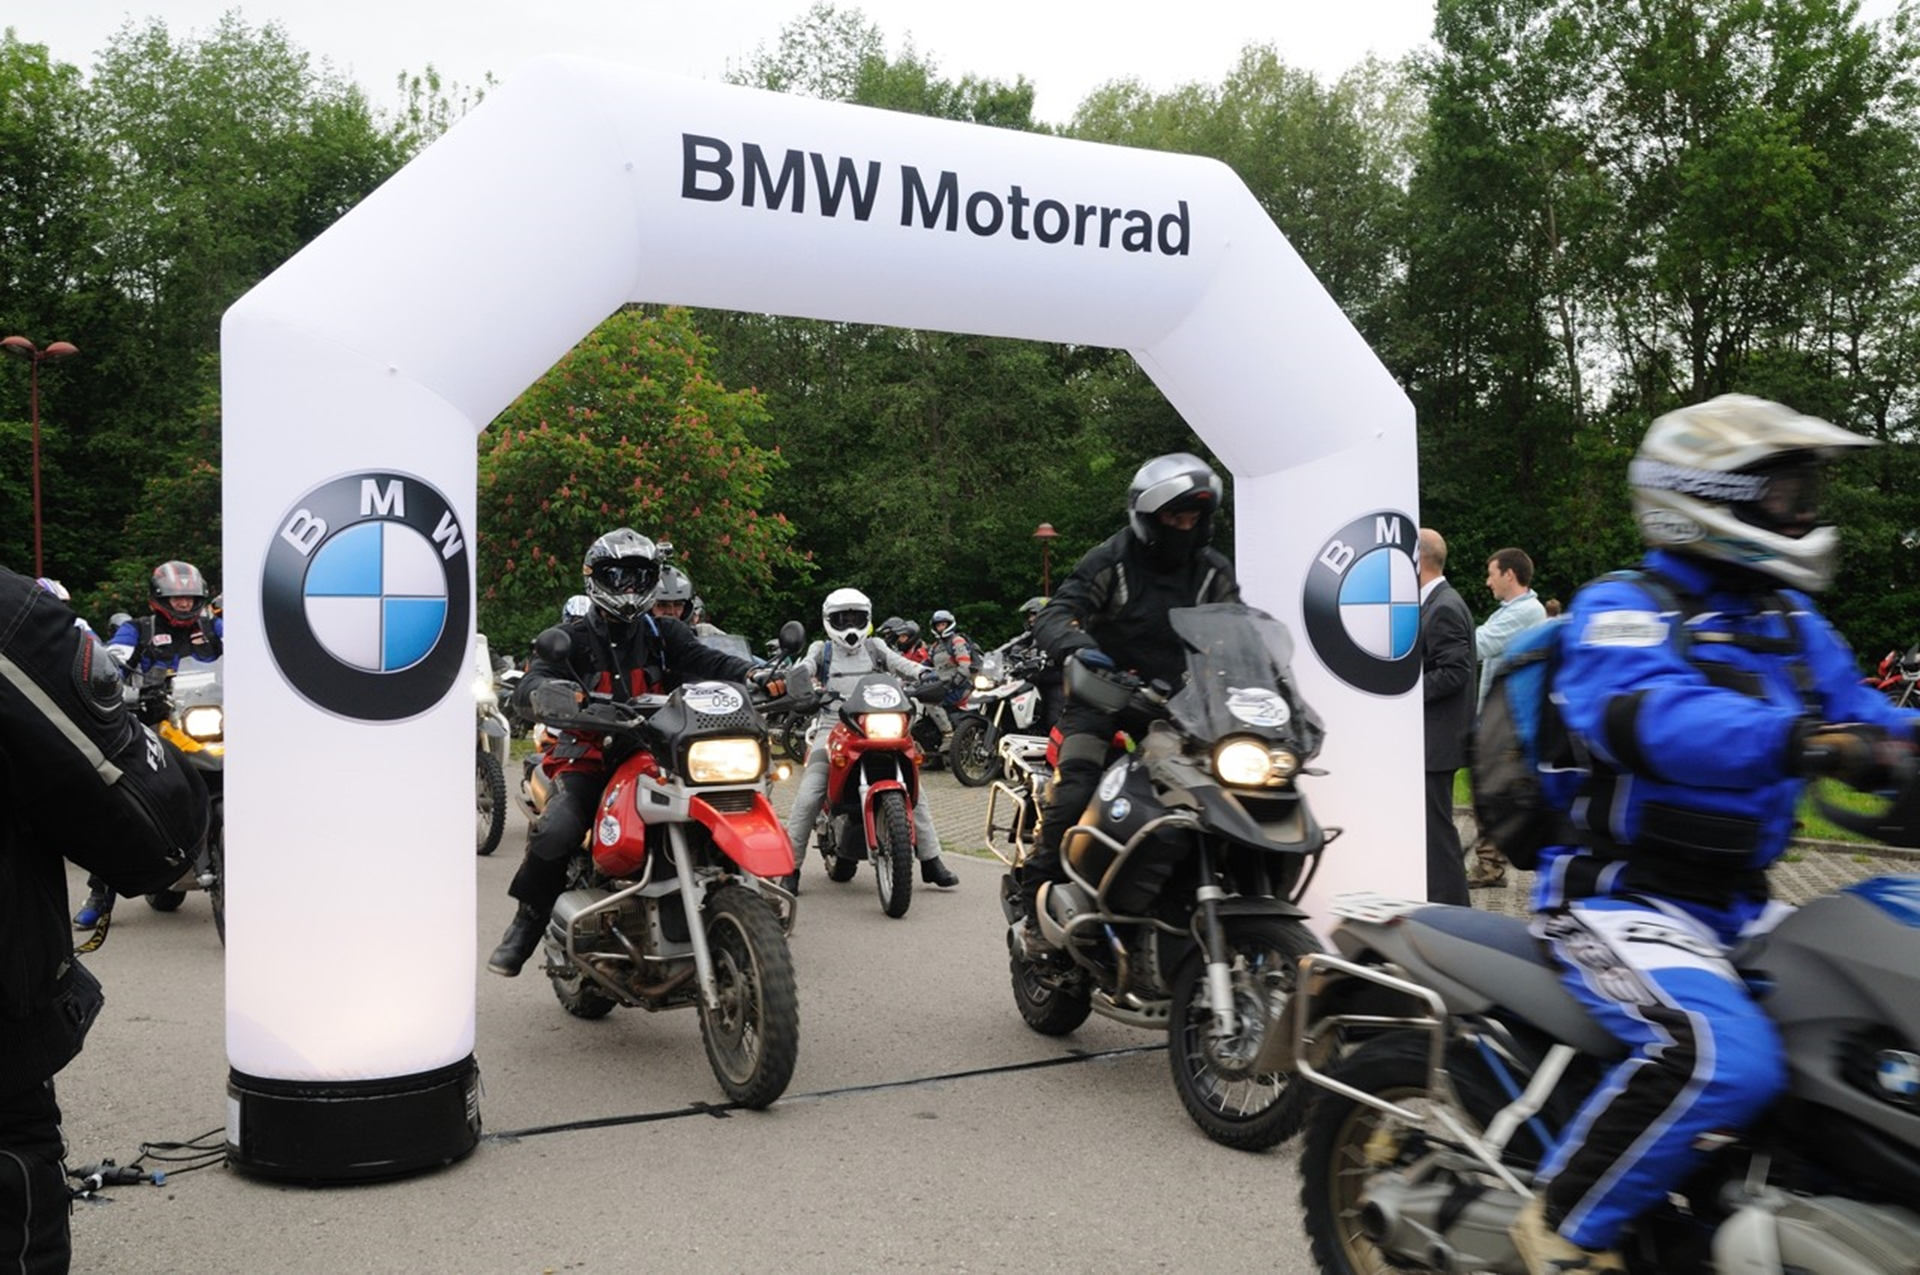 bmw motorcyclists once again ride for a greener future